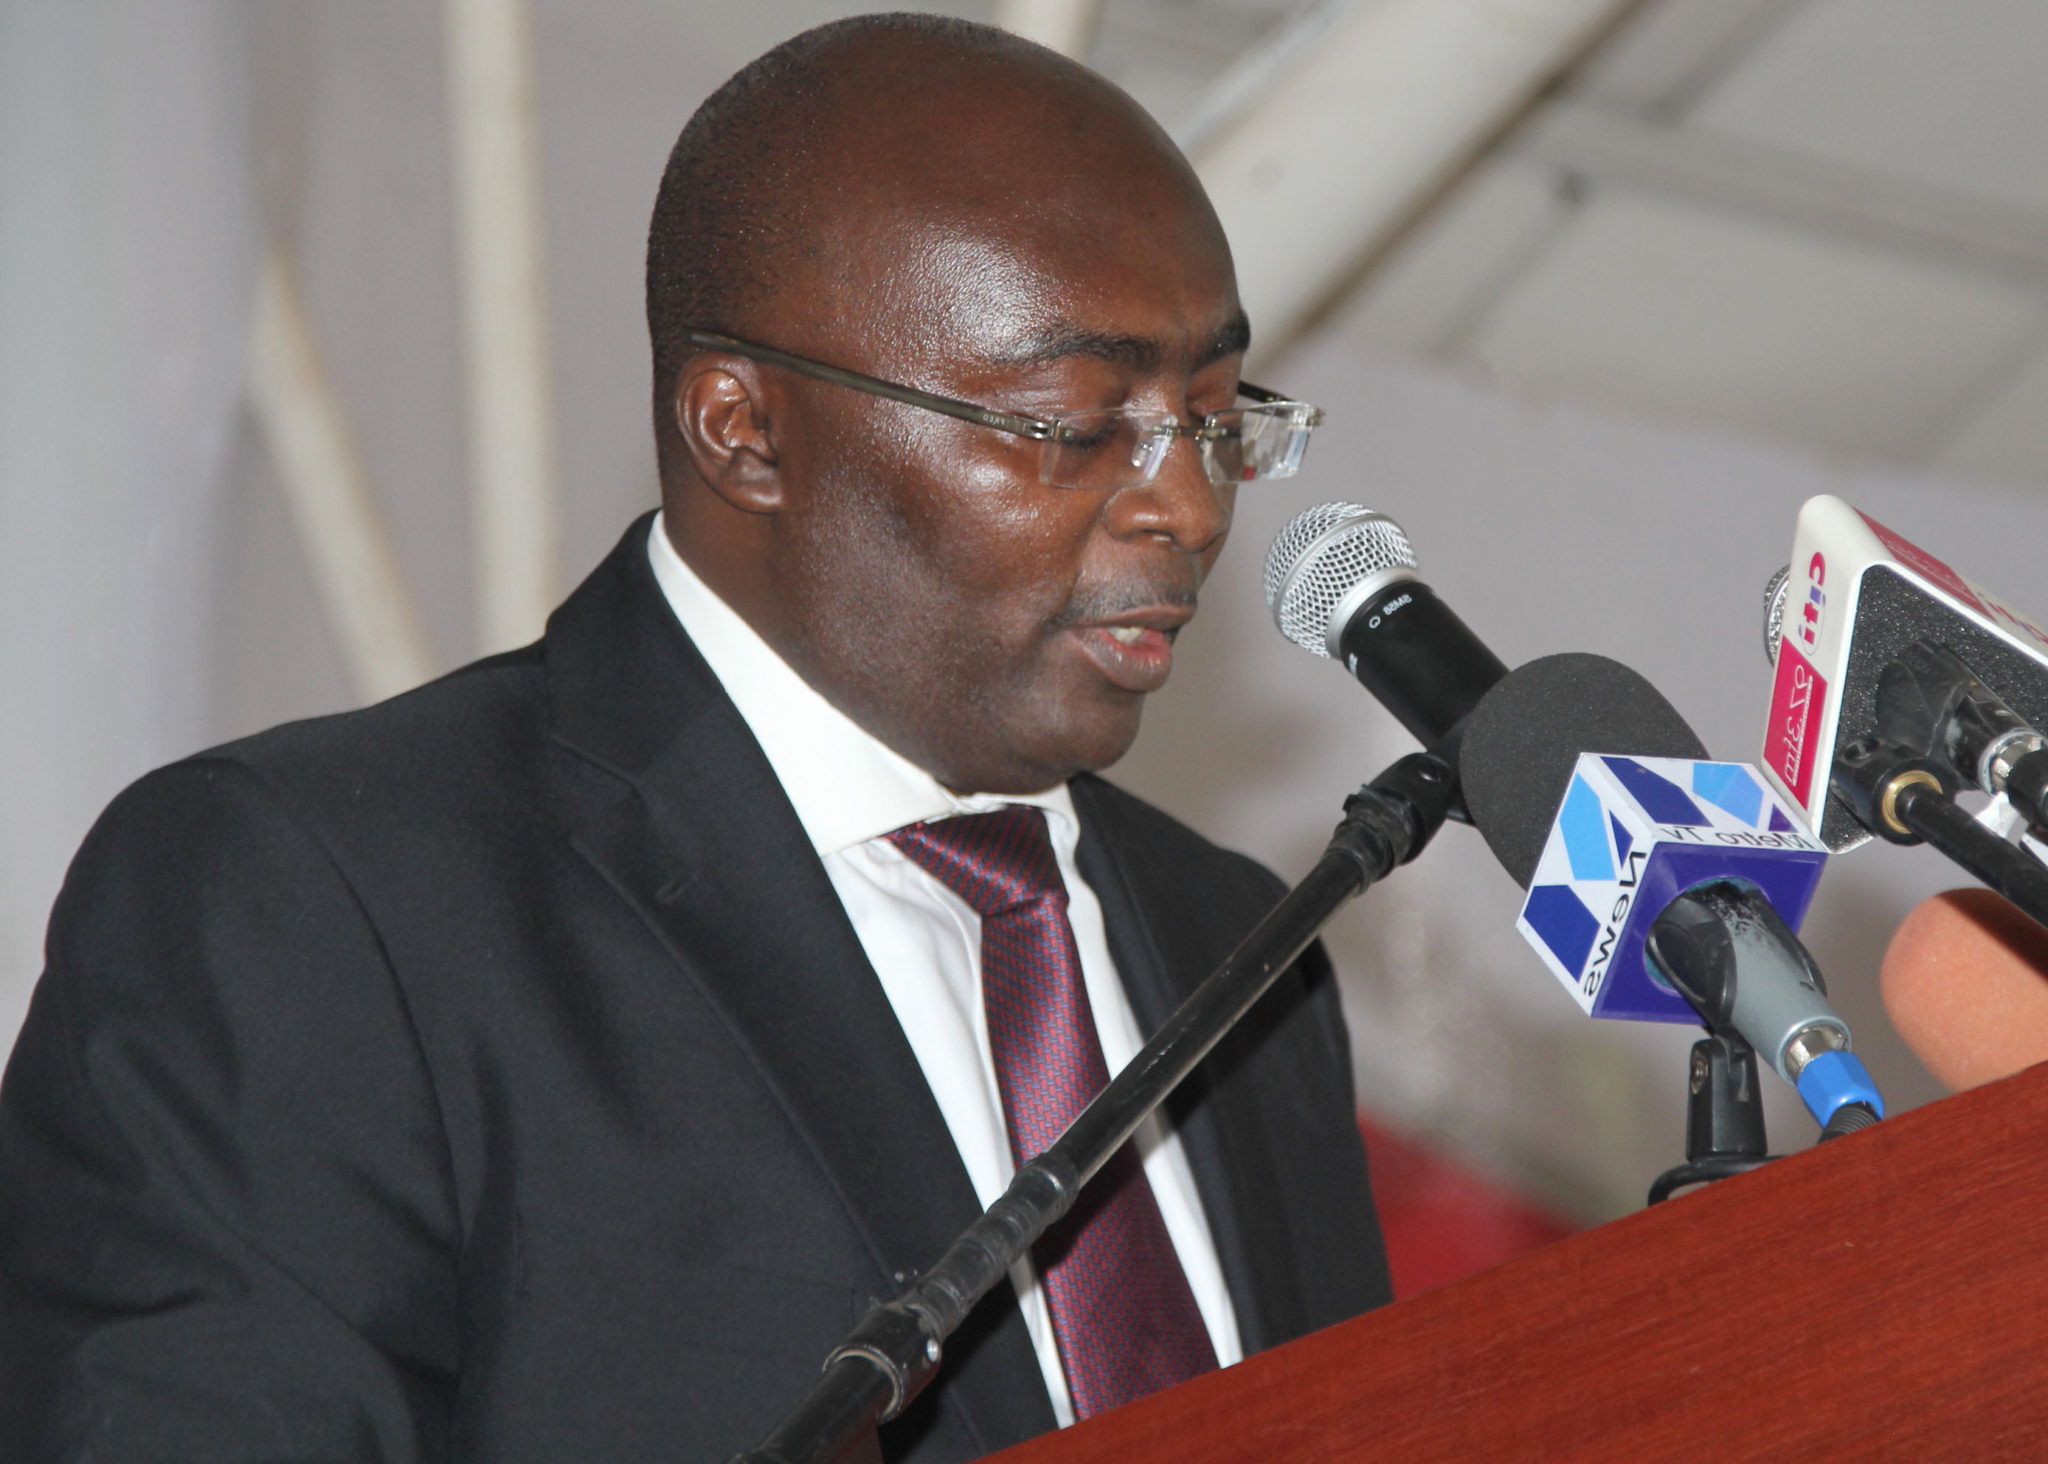 See Video: Bawumia to Mahama- We'll soon expose '419' people in your era